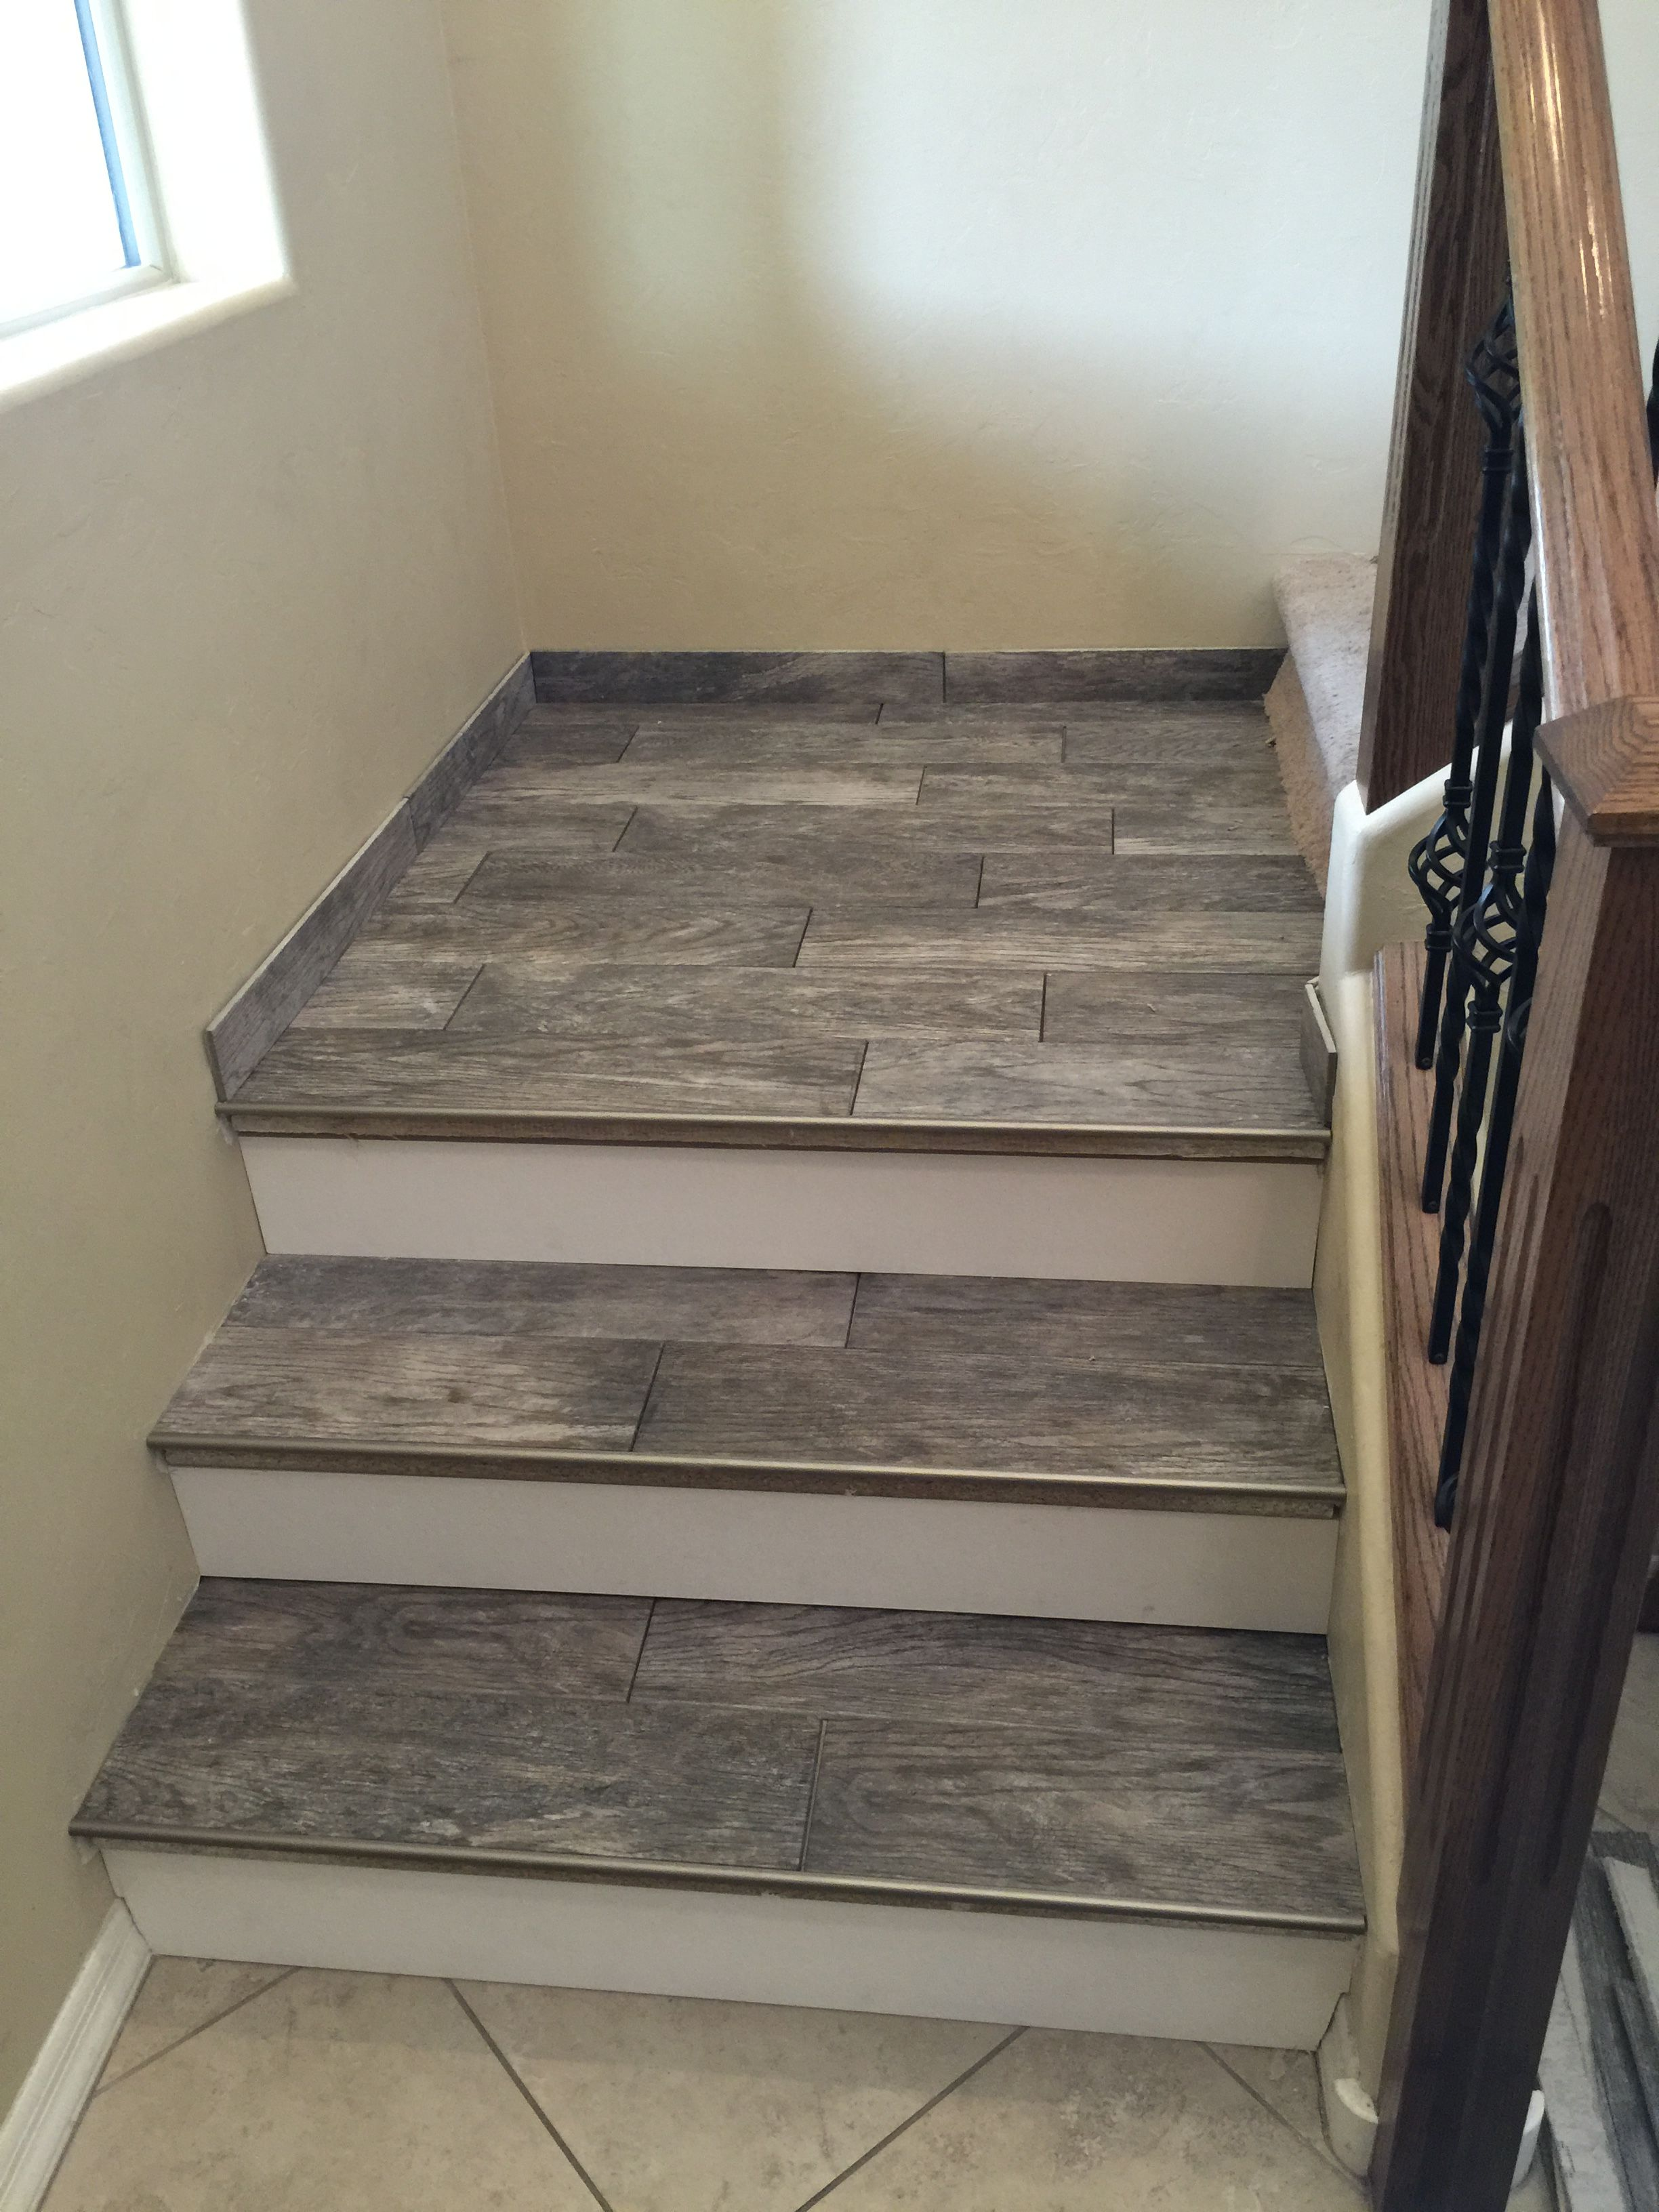 Porcelain Wood Look Tile Stairs Design And Build Tiled